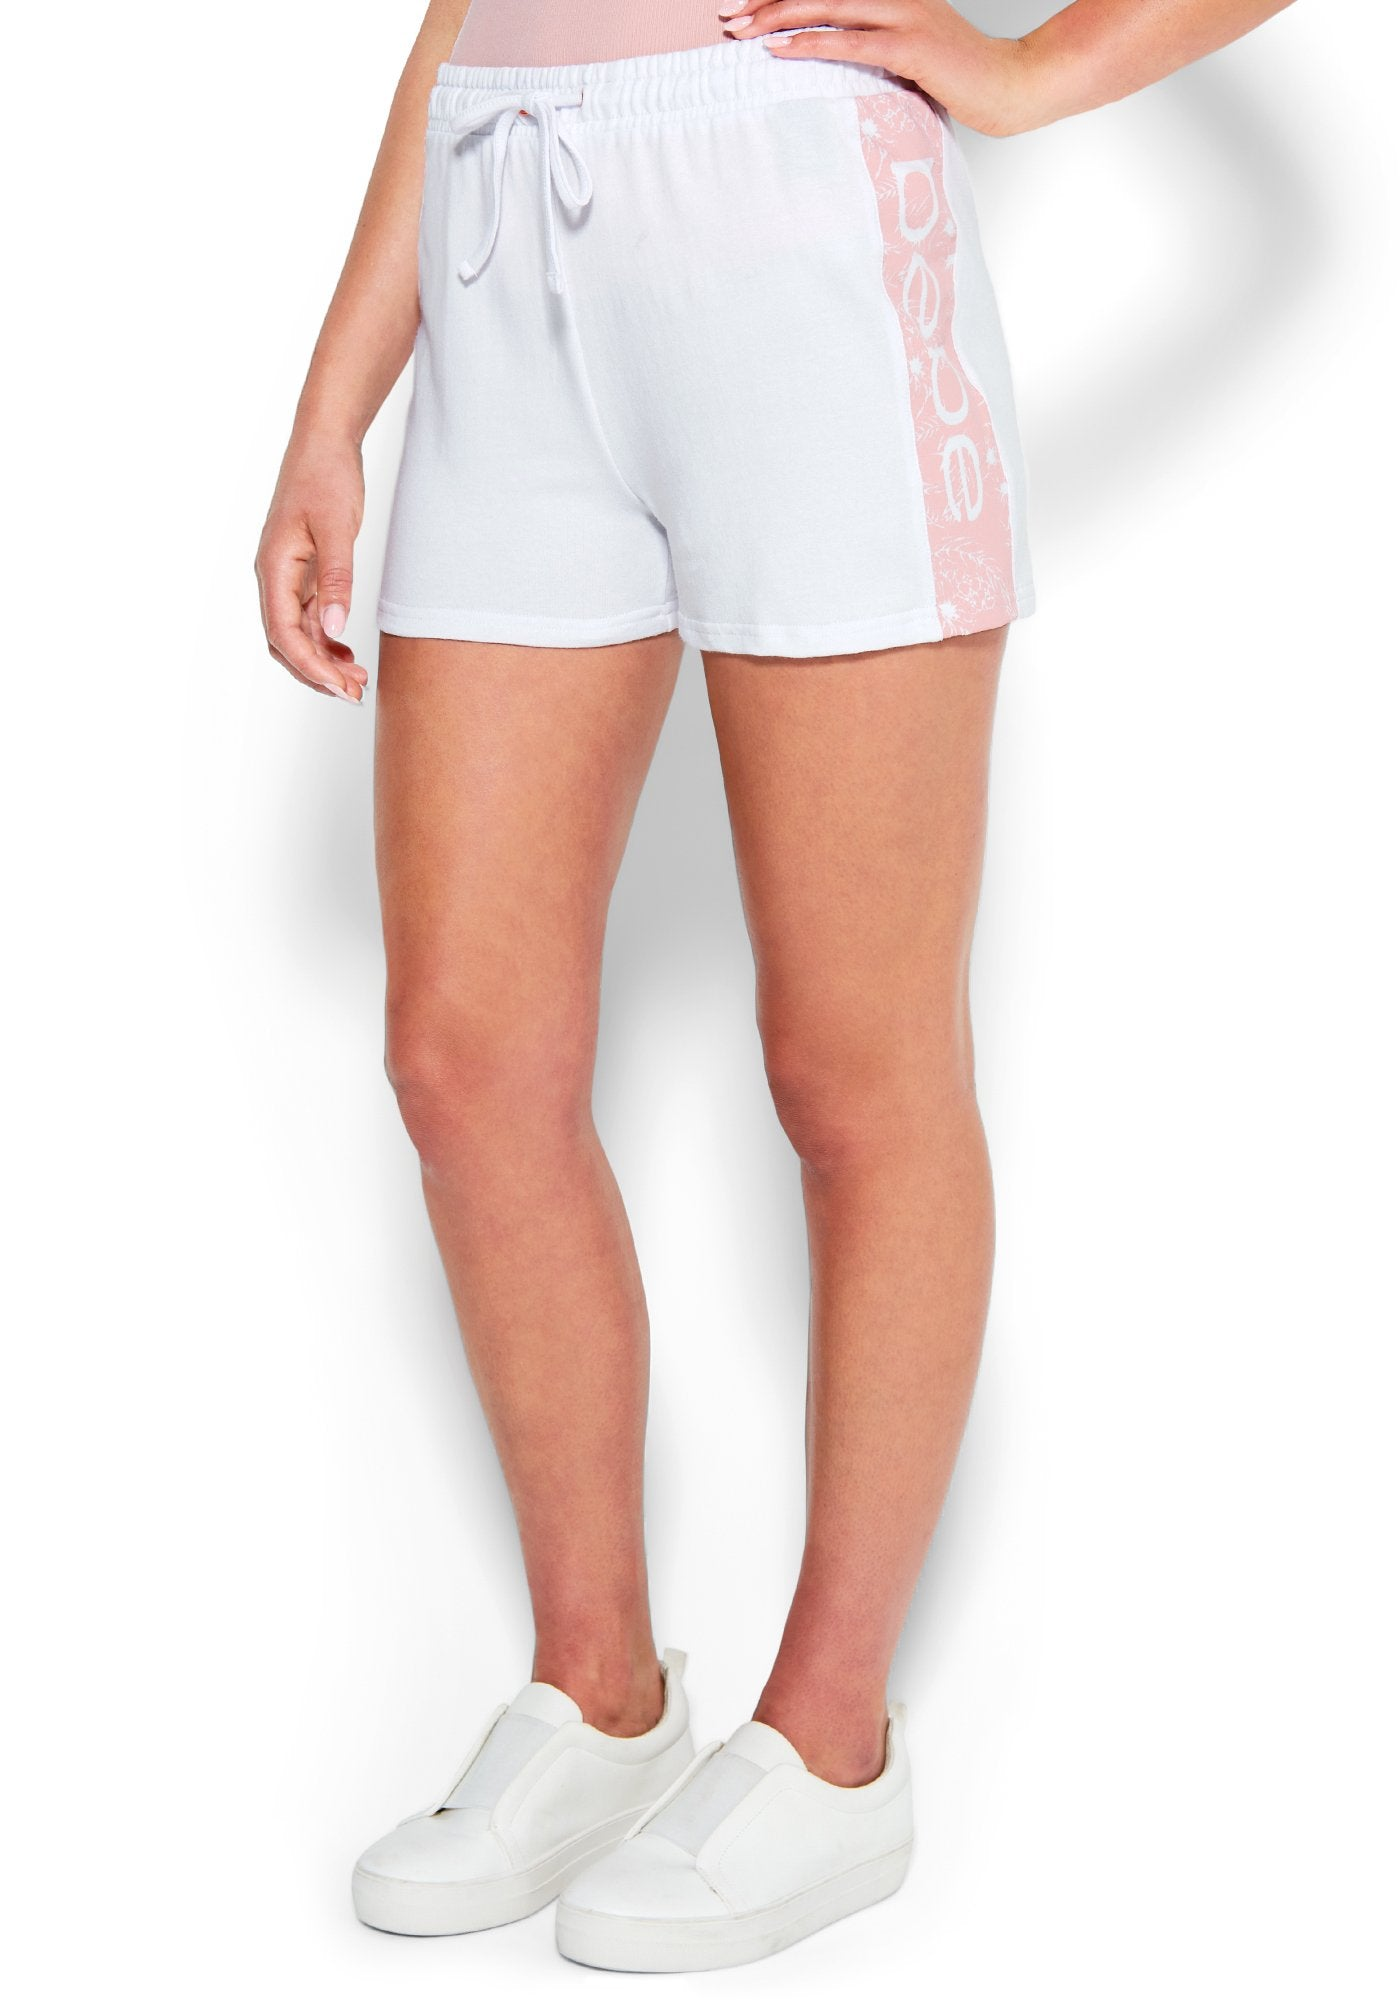 Image of Women's Bebe Logo French Terry Short, Size Medium in BRIGHT WHITE Cotton/Spandex